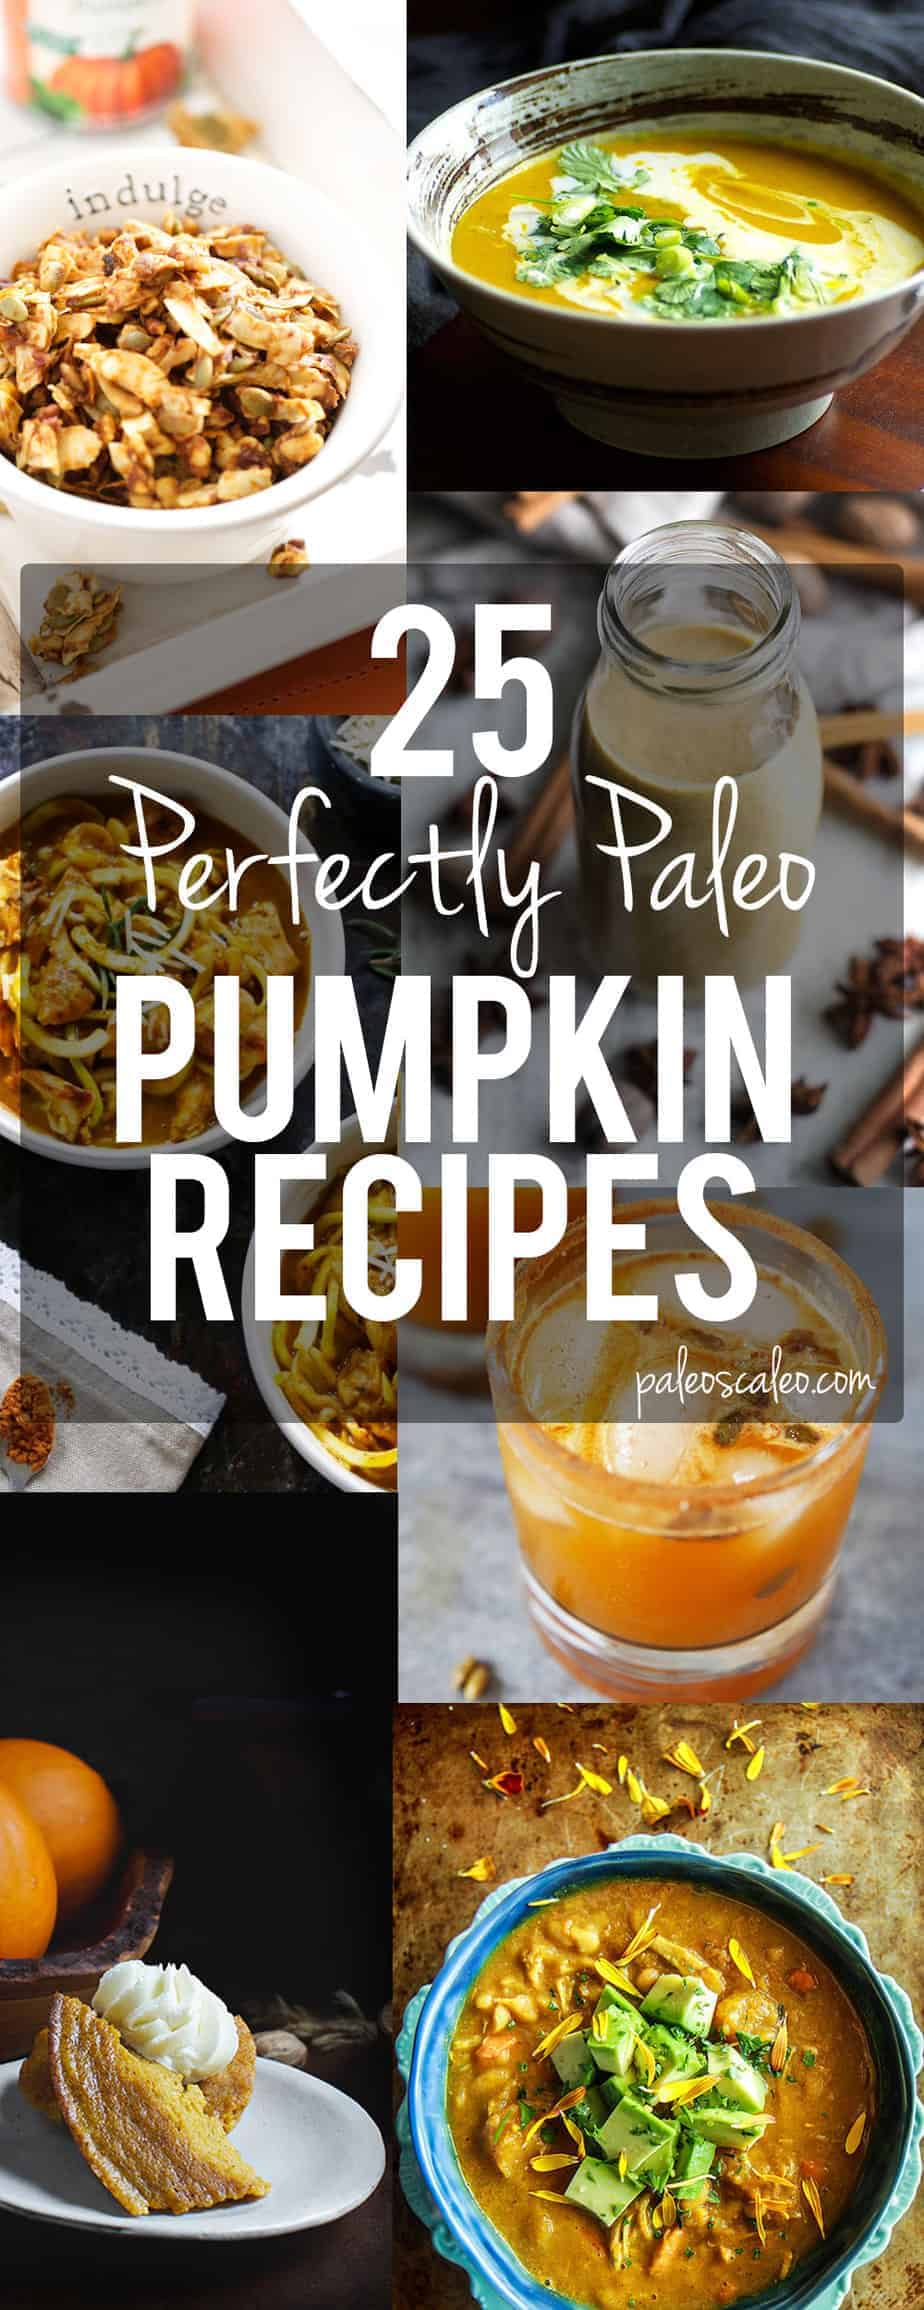 25 Perfectly Paleo Pumpkin Recipes | PaleoScaleo.com